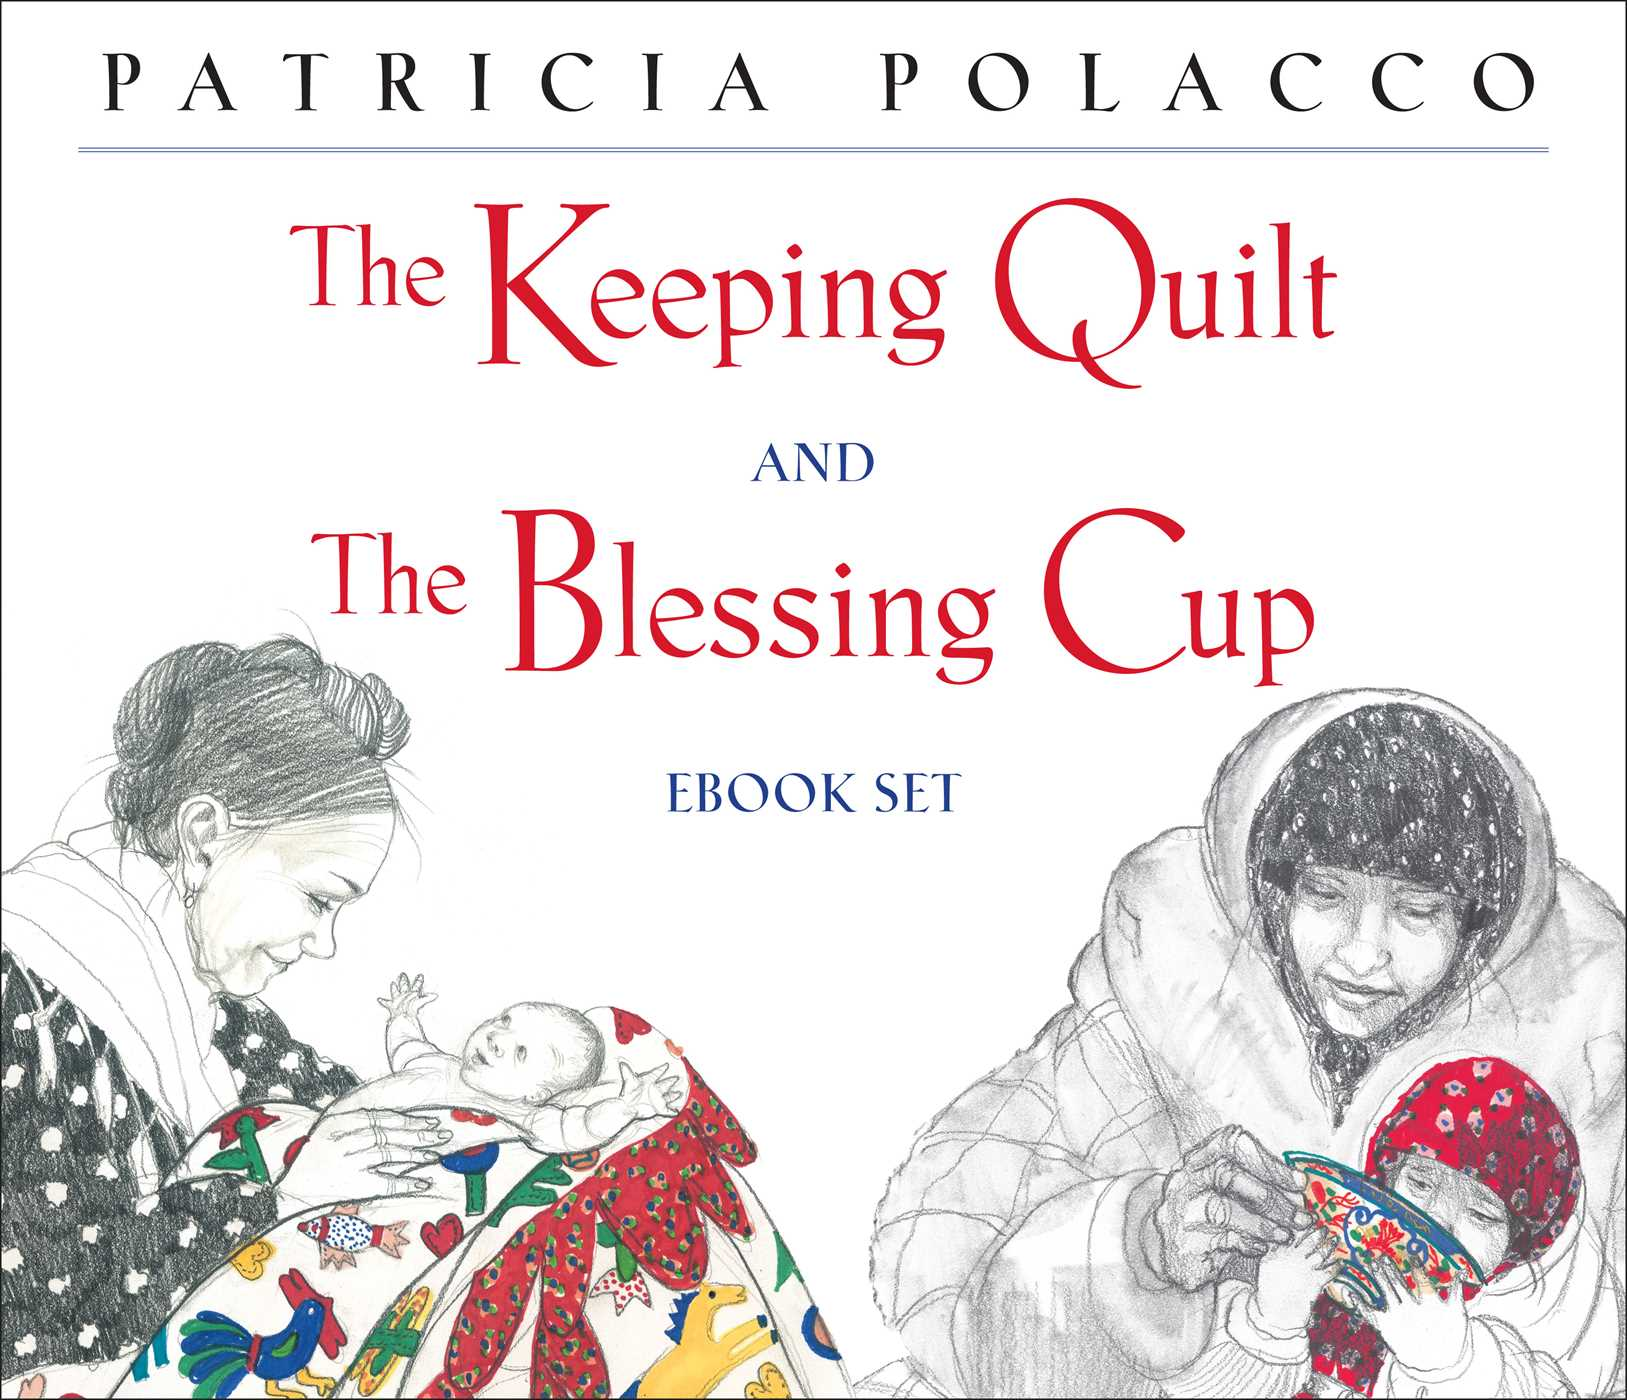 Keeping-quilt-and-the-blessing-cup-ebook-set-9781481401050_hr